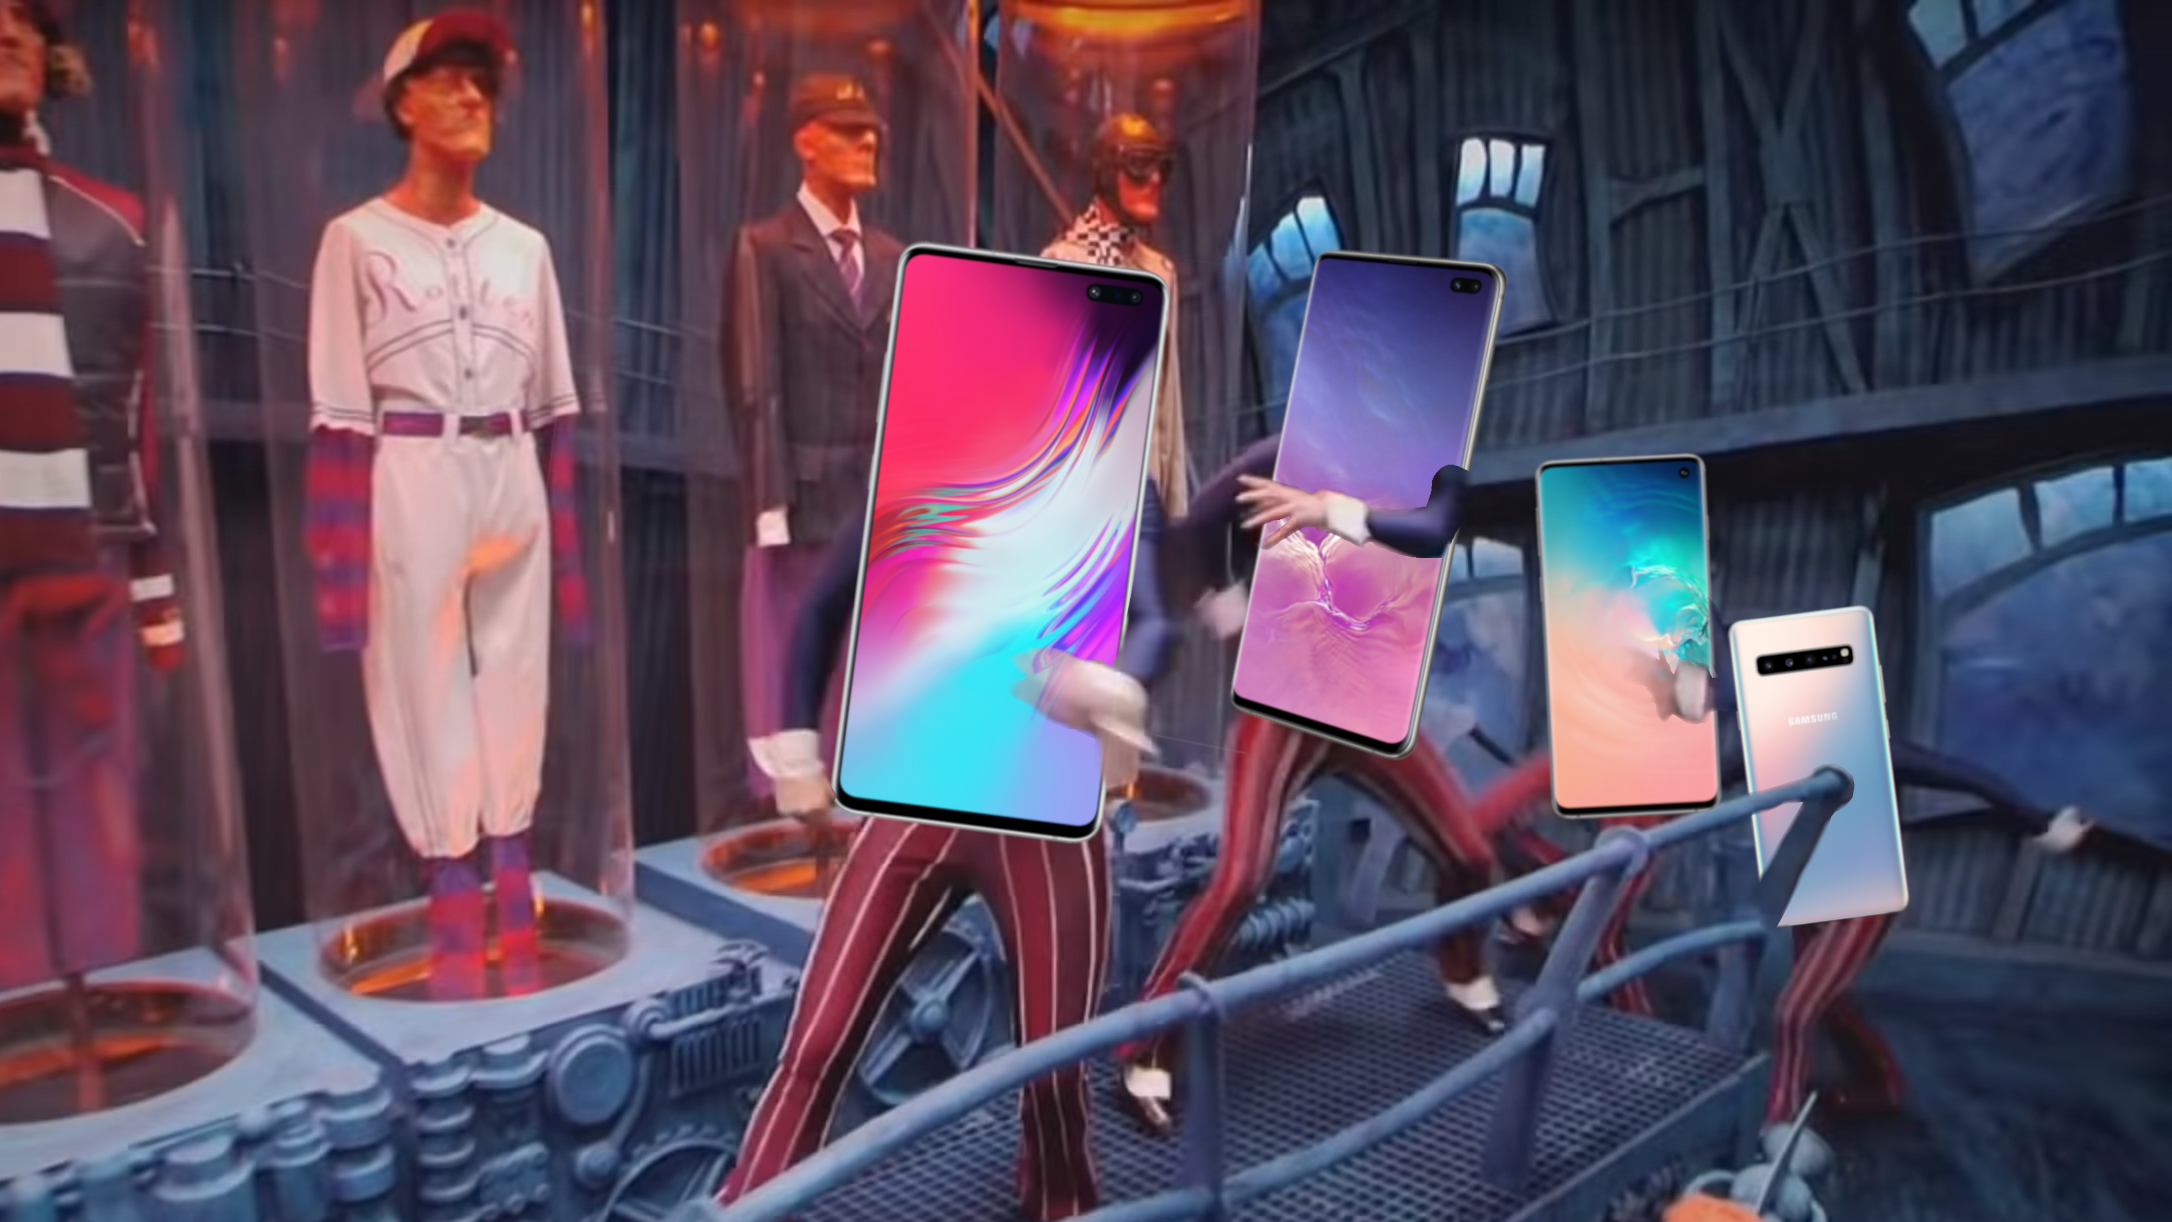 Samsung's official Galaxy S10 wallpapers all try really hard to hide the display cutout